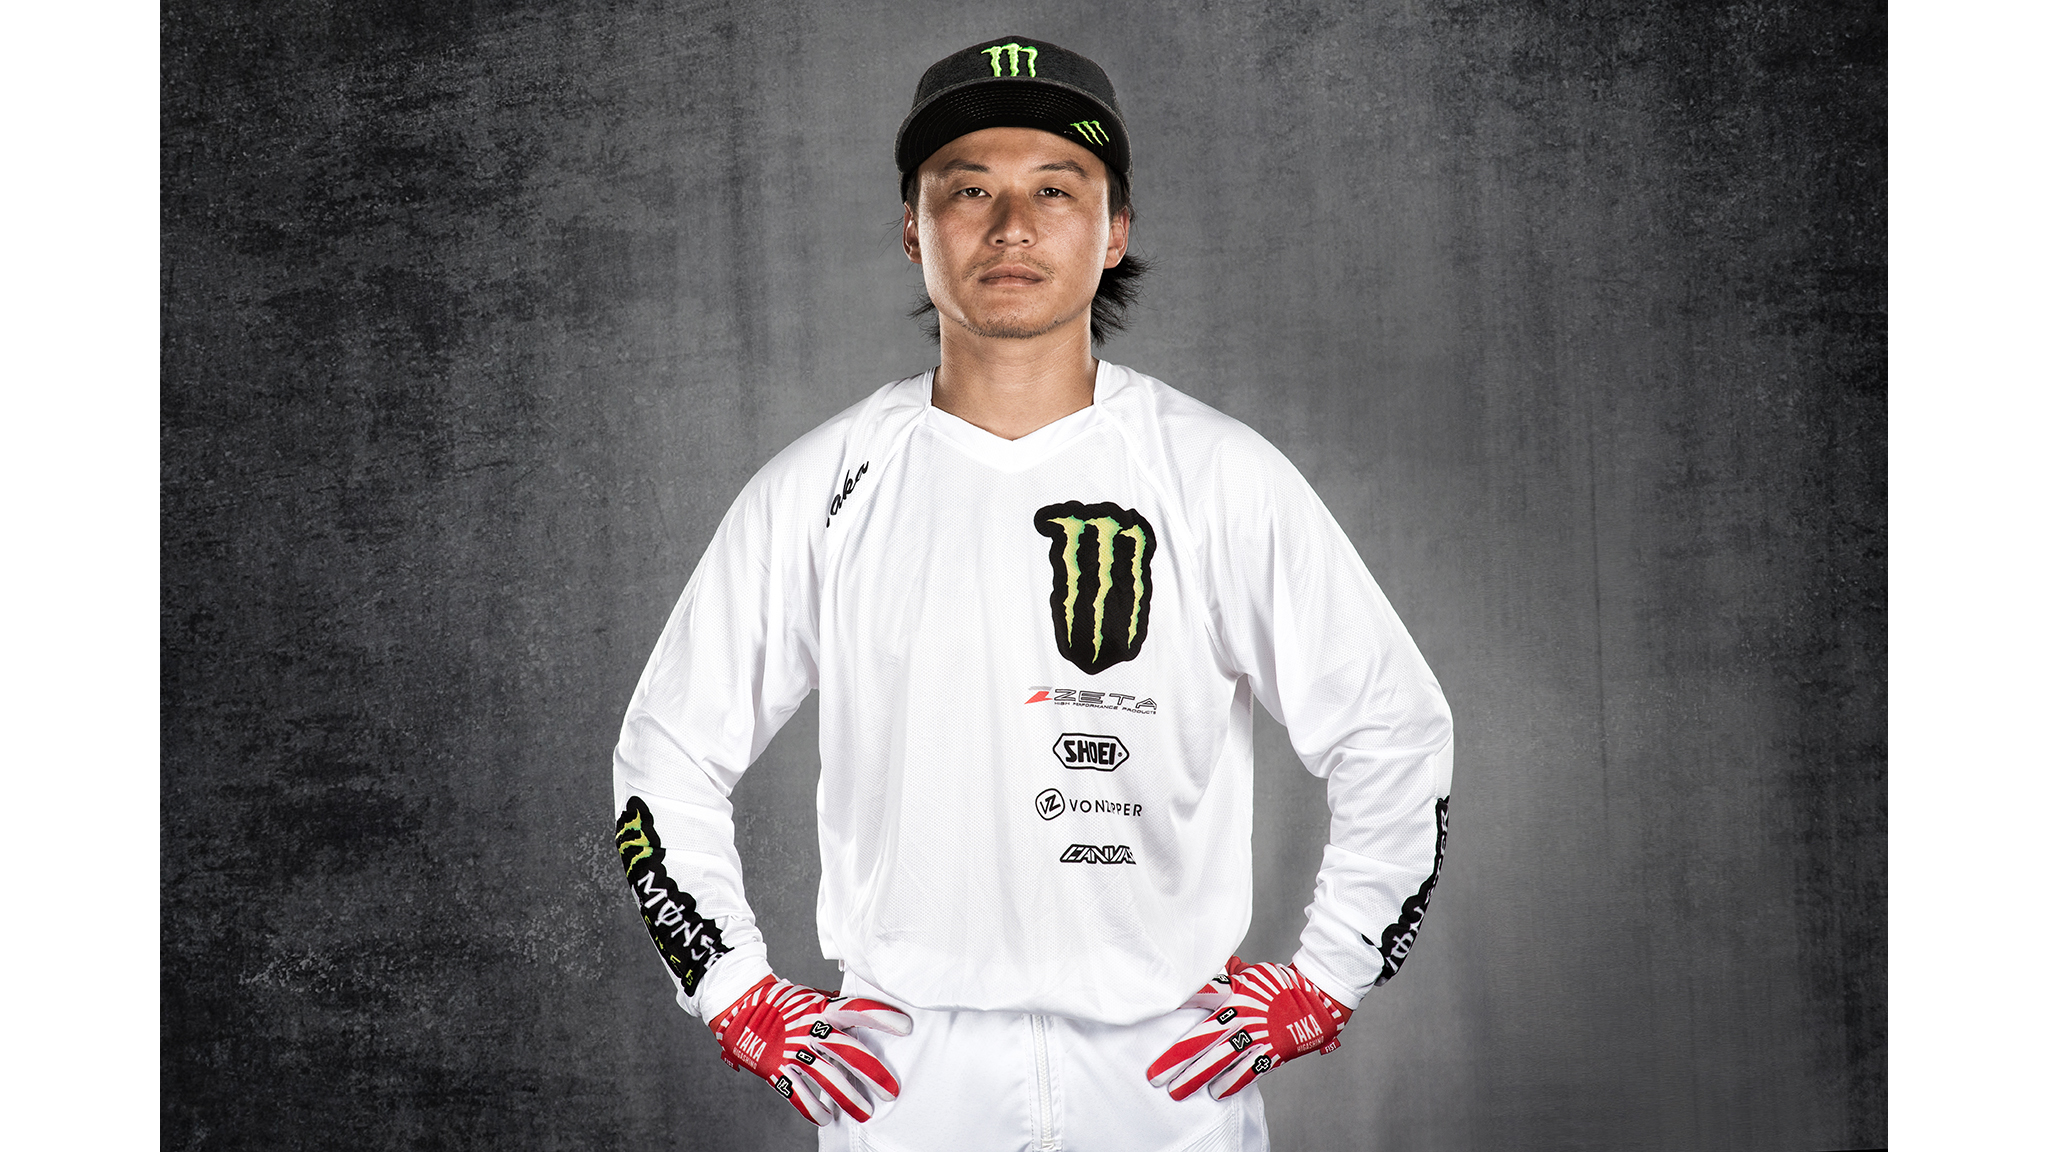 Every year, X Games is a special, crazy feeling, says Taka Higashino, who is slated to ride in both Moto X Freestyle and Moto X Best Trick.